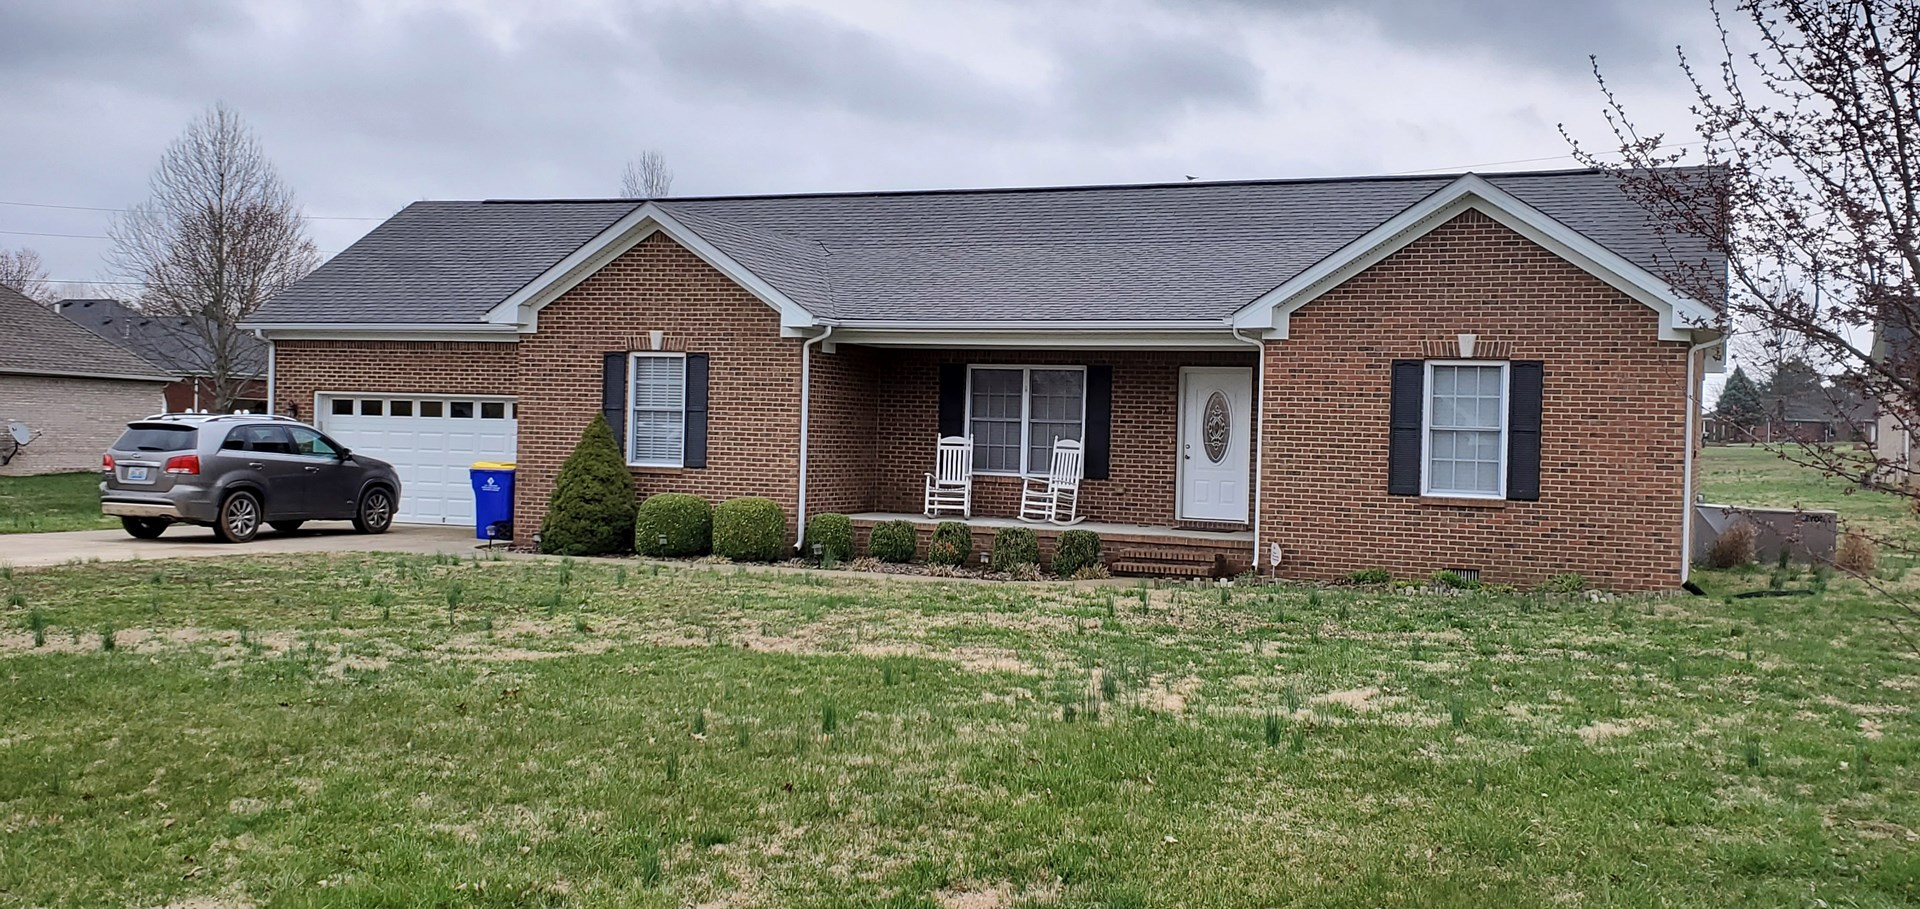 Nice 3 bedroom 2 bath Brick home for sale in Franklin Ky.